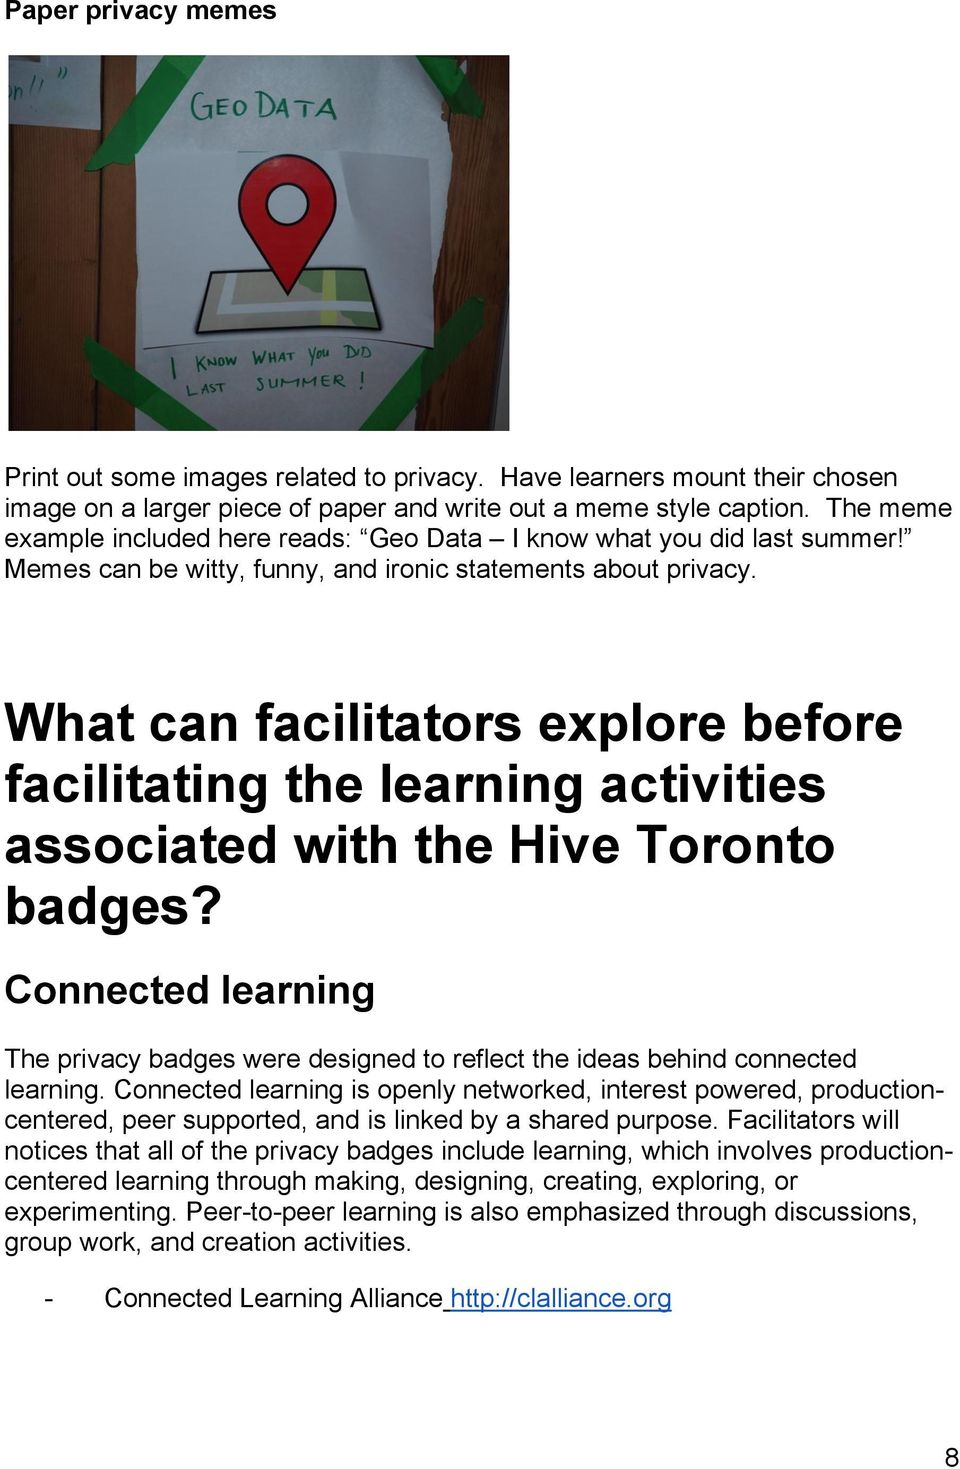 What can facilitators explore before facilitating the learning activities associated with the Hive Toronto badges?